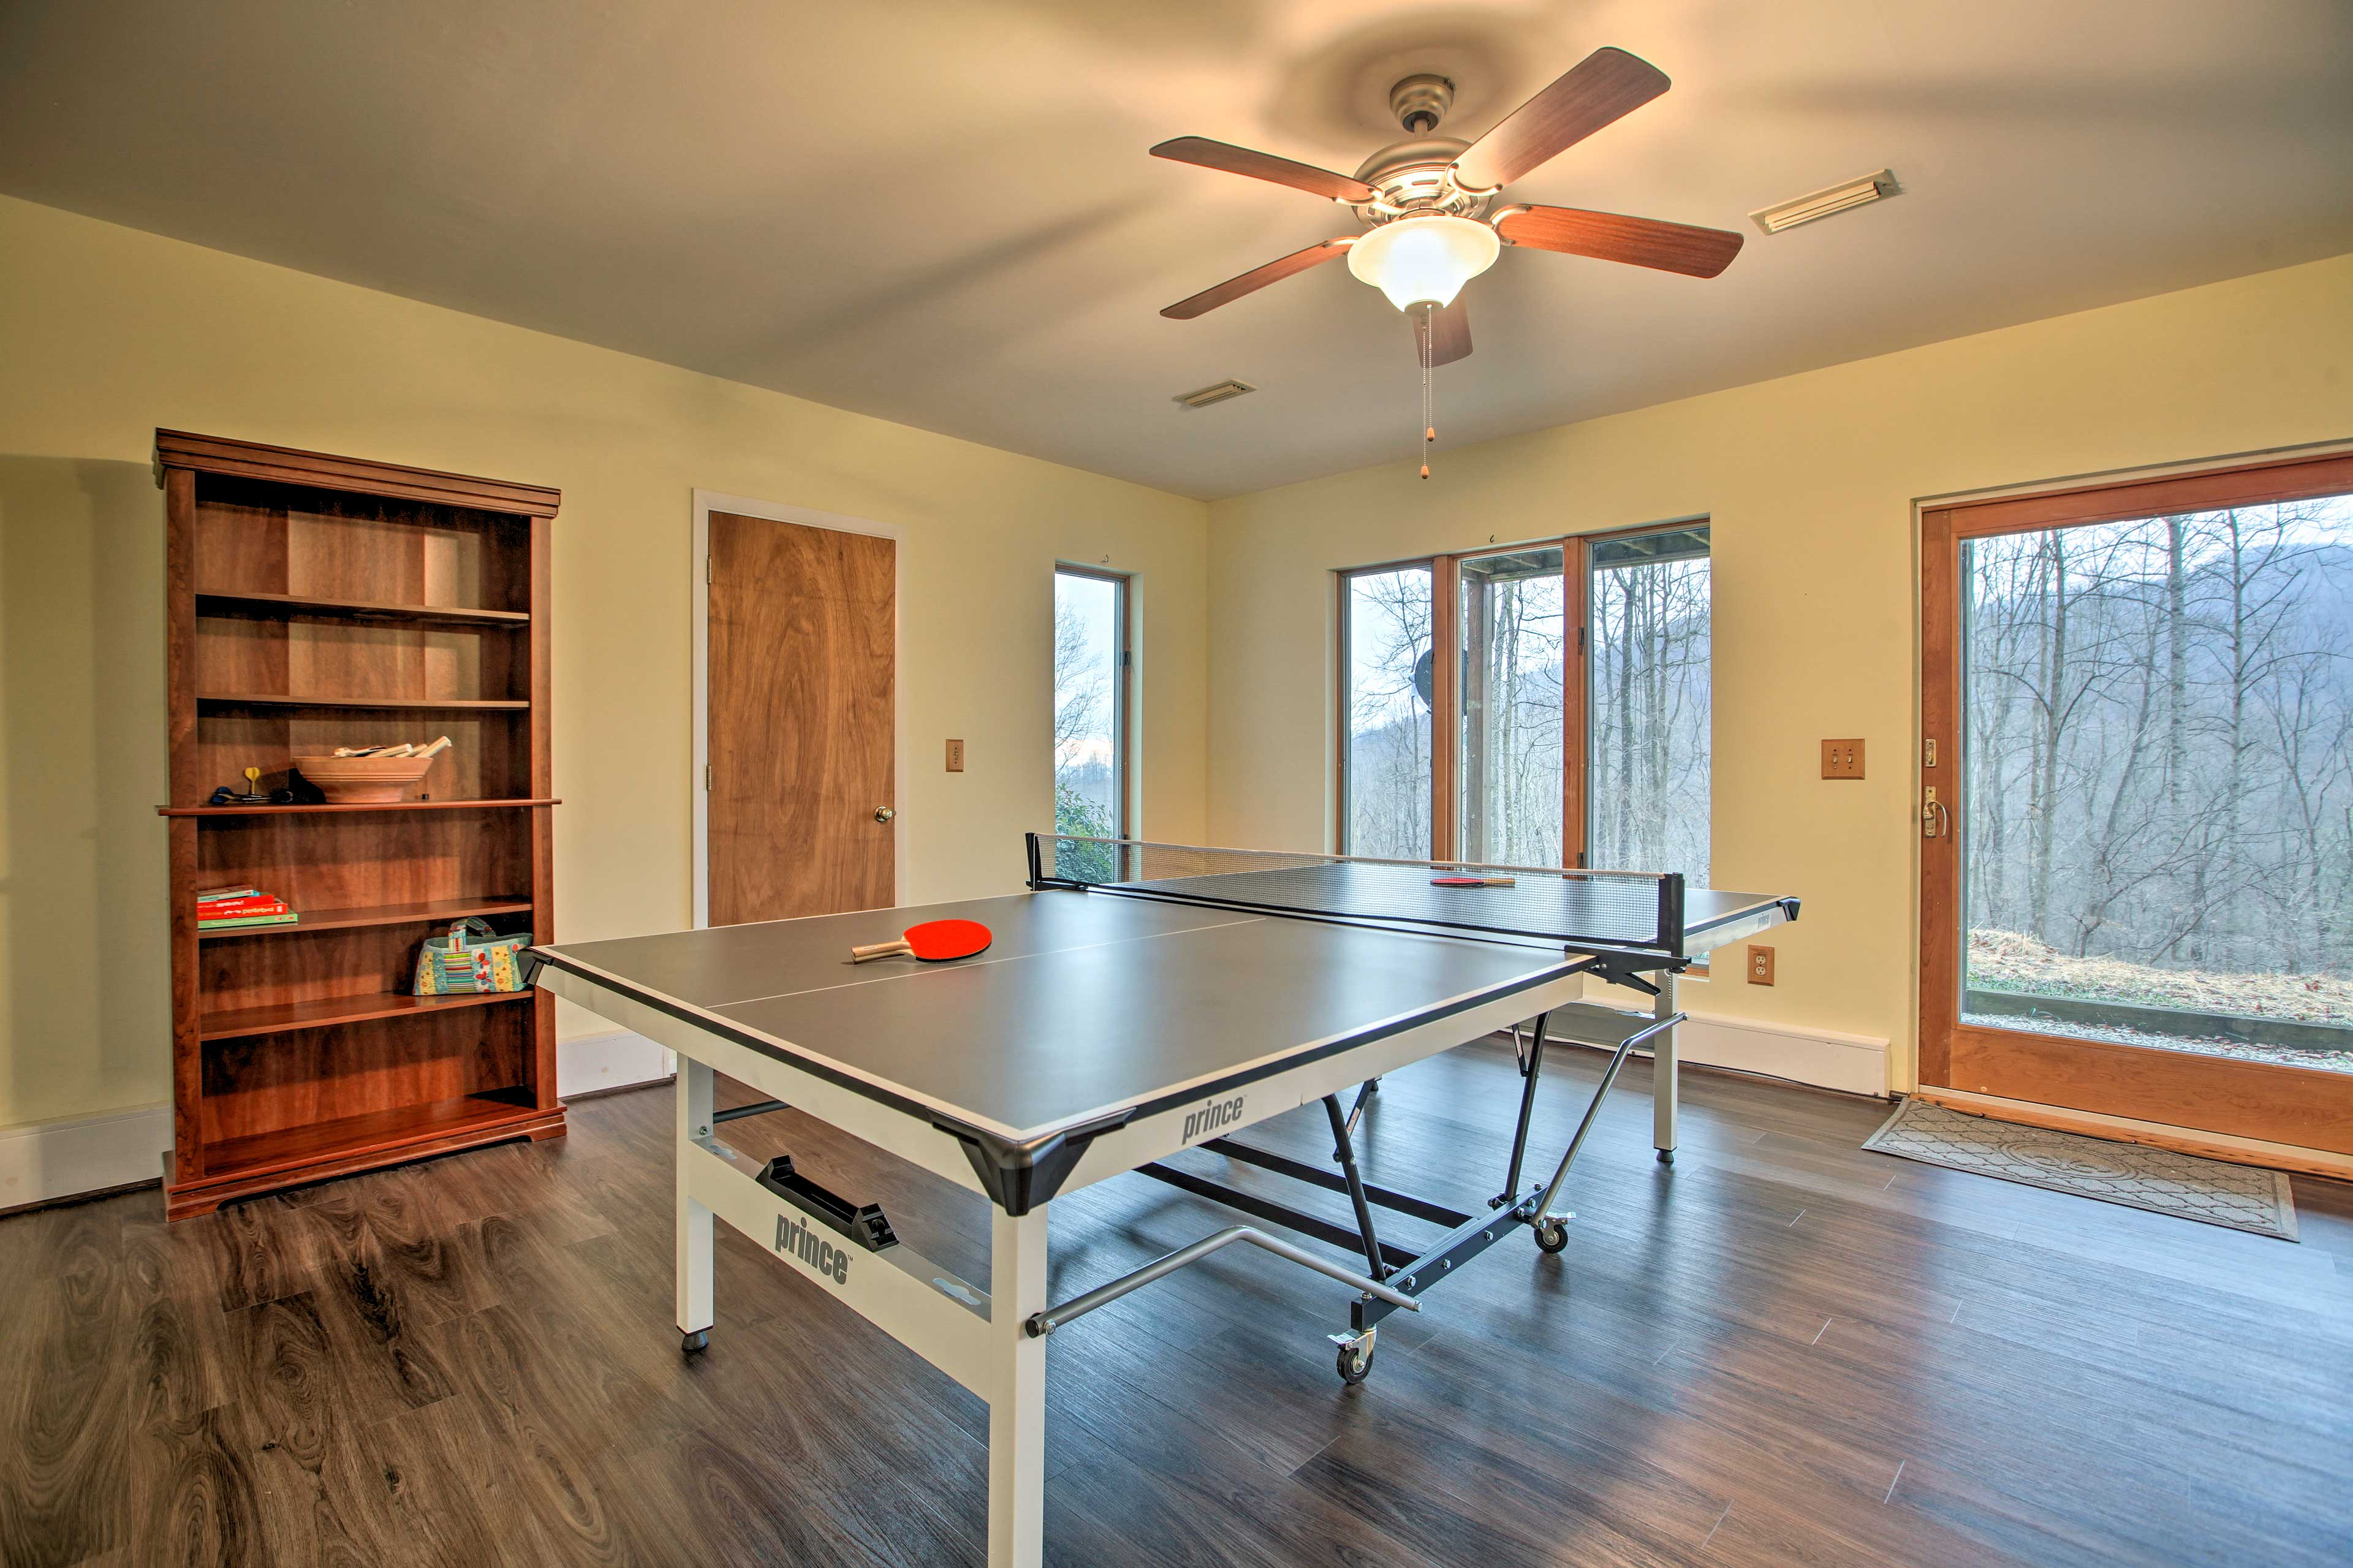 Play a quick game of ping-pong here!